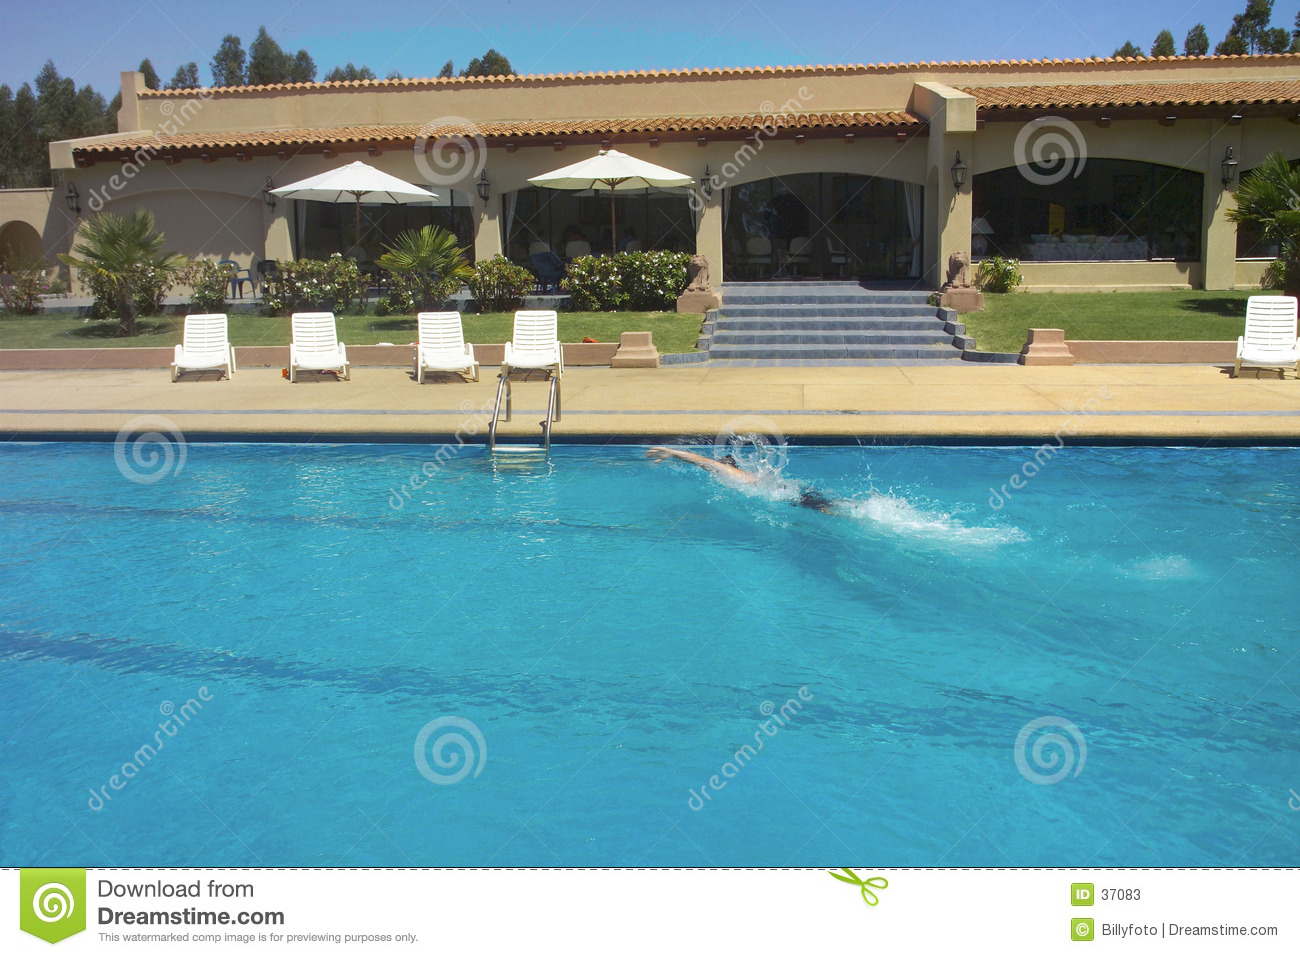 Pool and swimmer